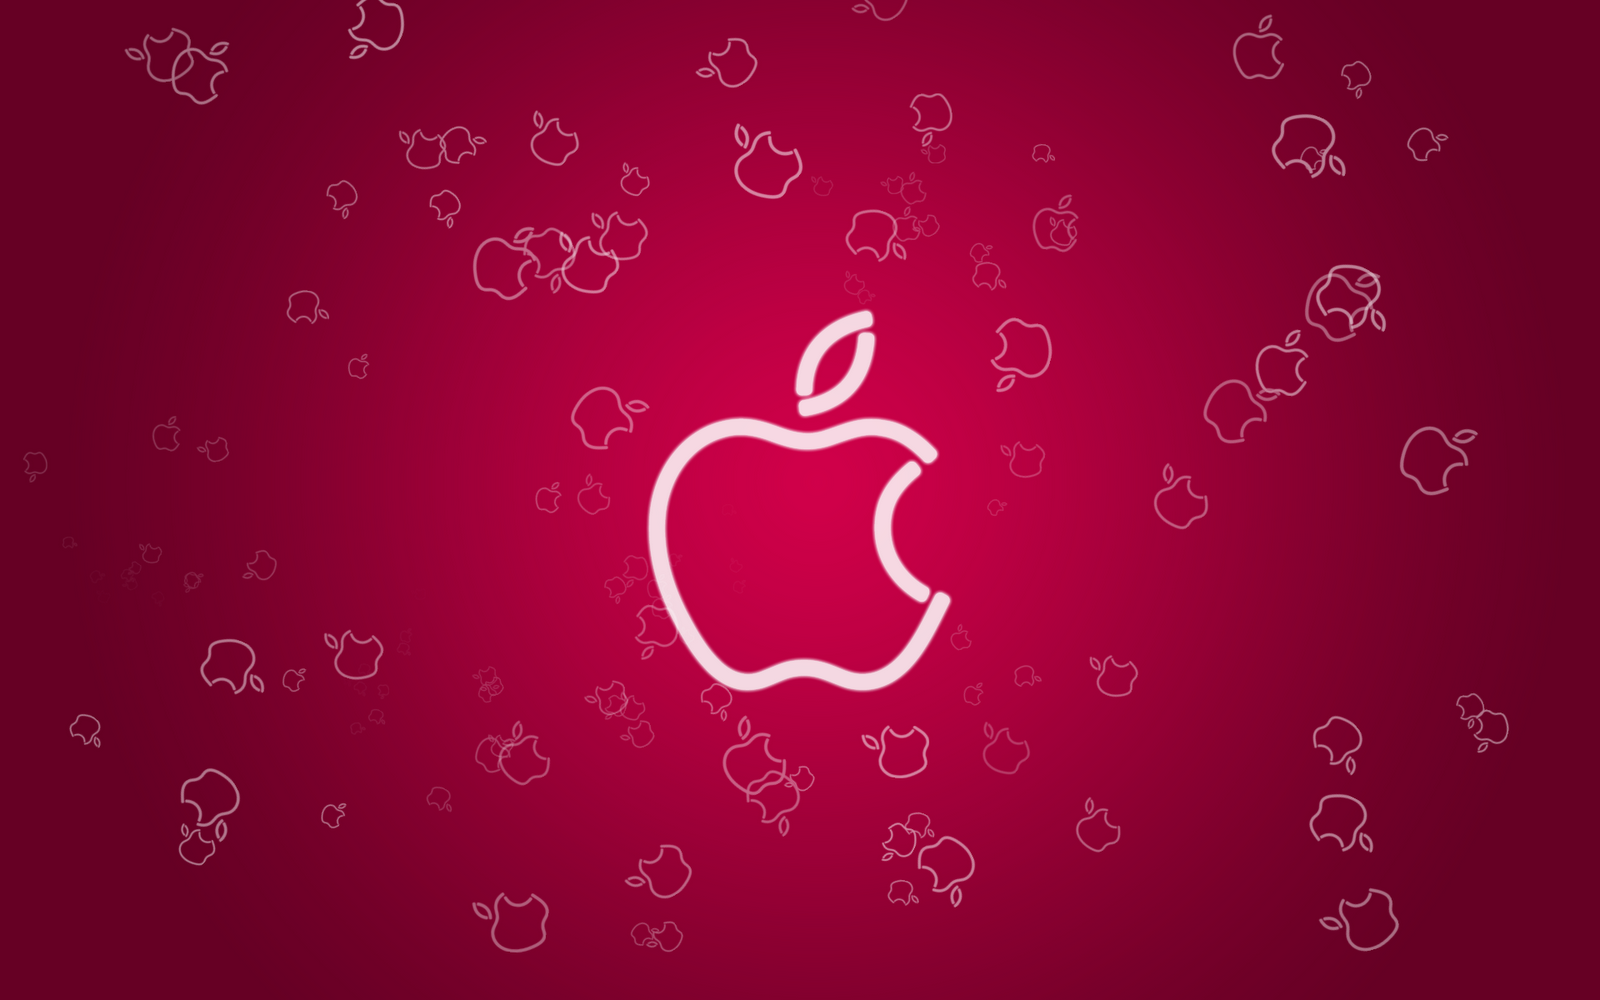 resolution Apple Wallpaper Art High Resolution is provided with high 1600x1000